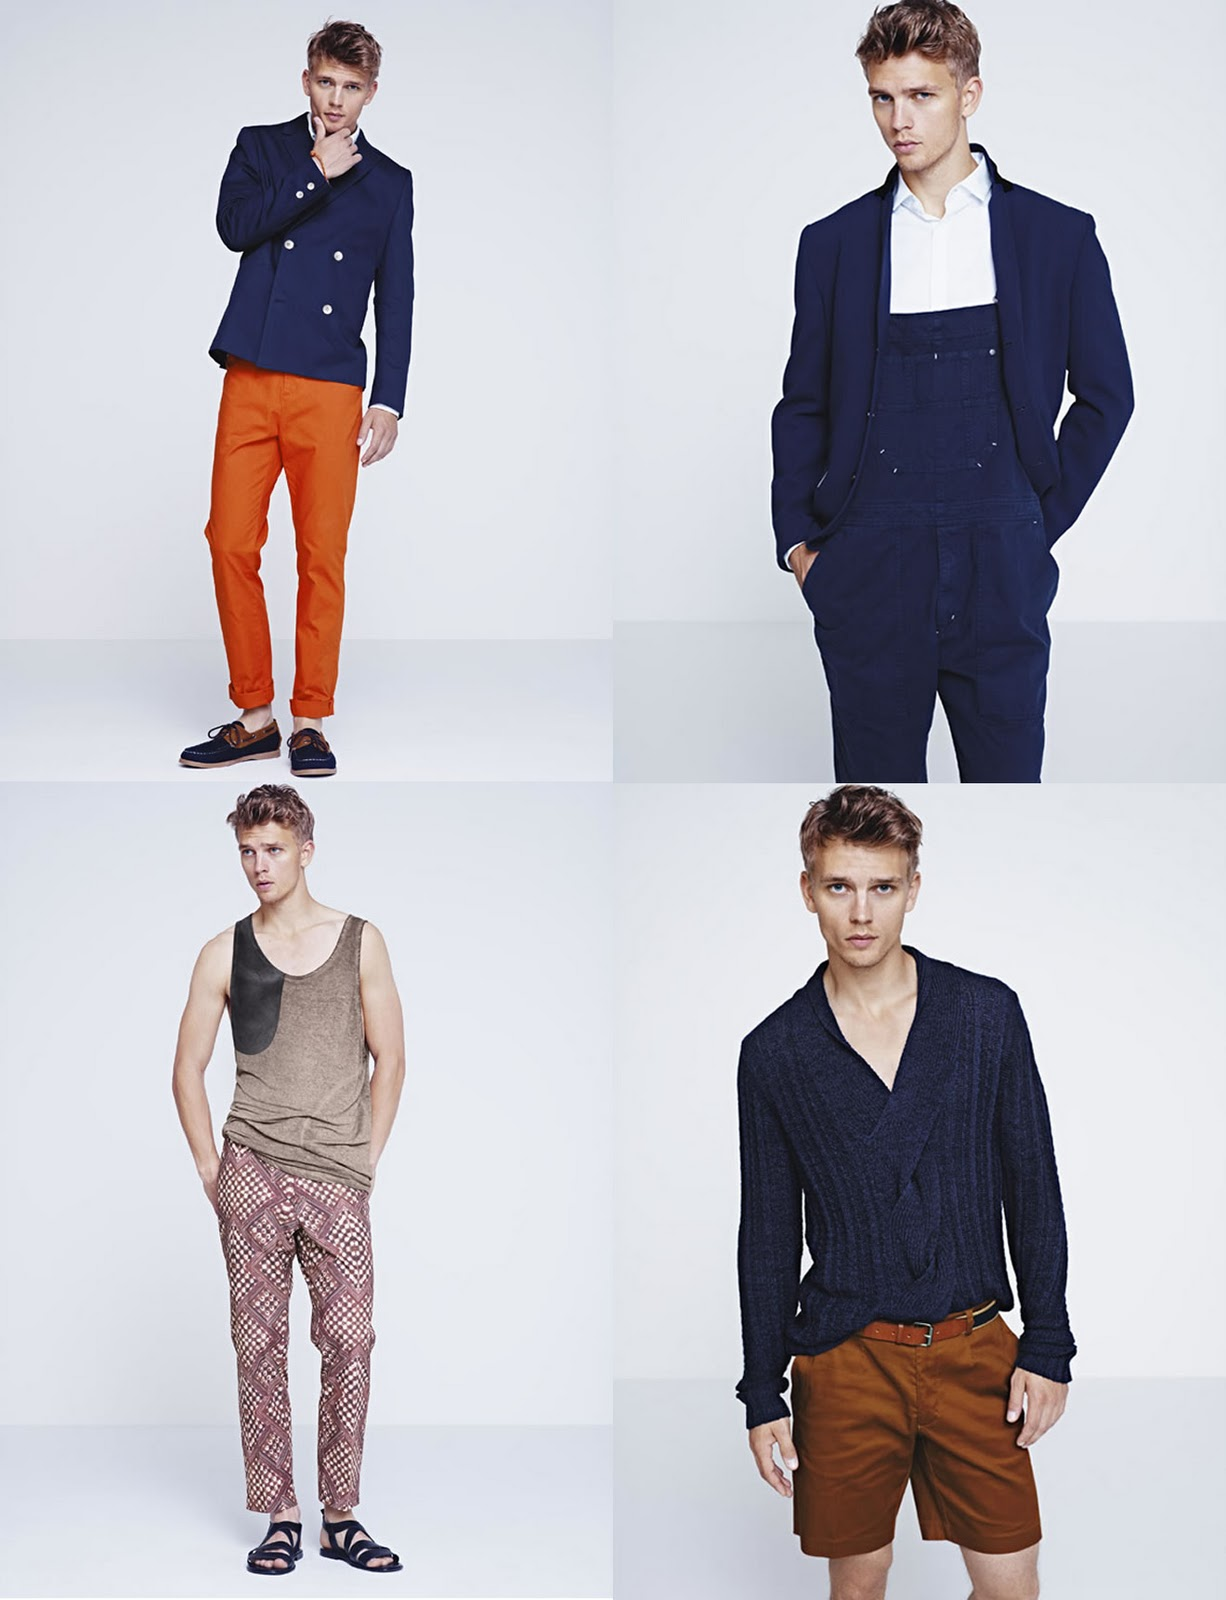 H&M Men's Summer Fashion Trends [VIDEO] « eZeLiving